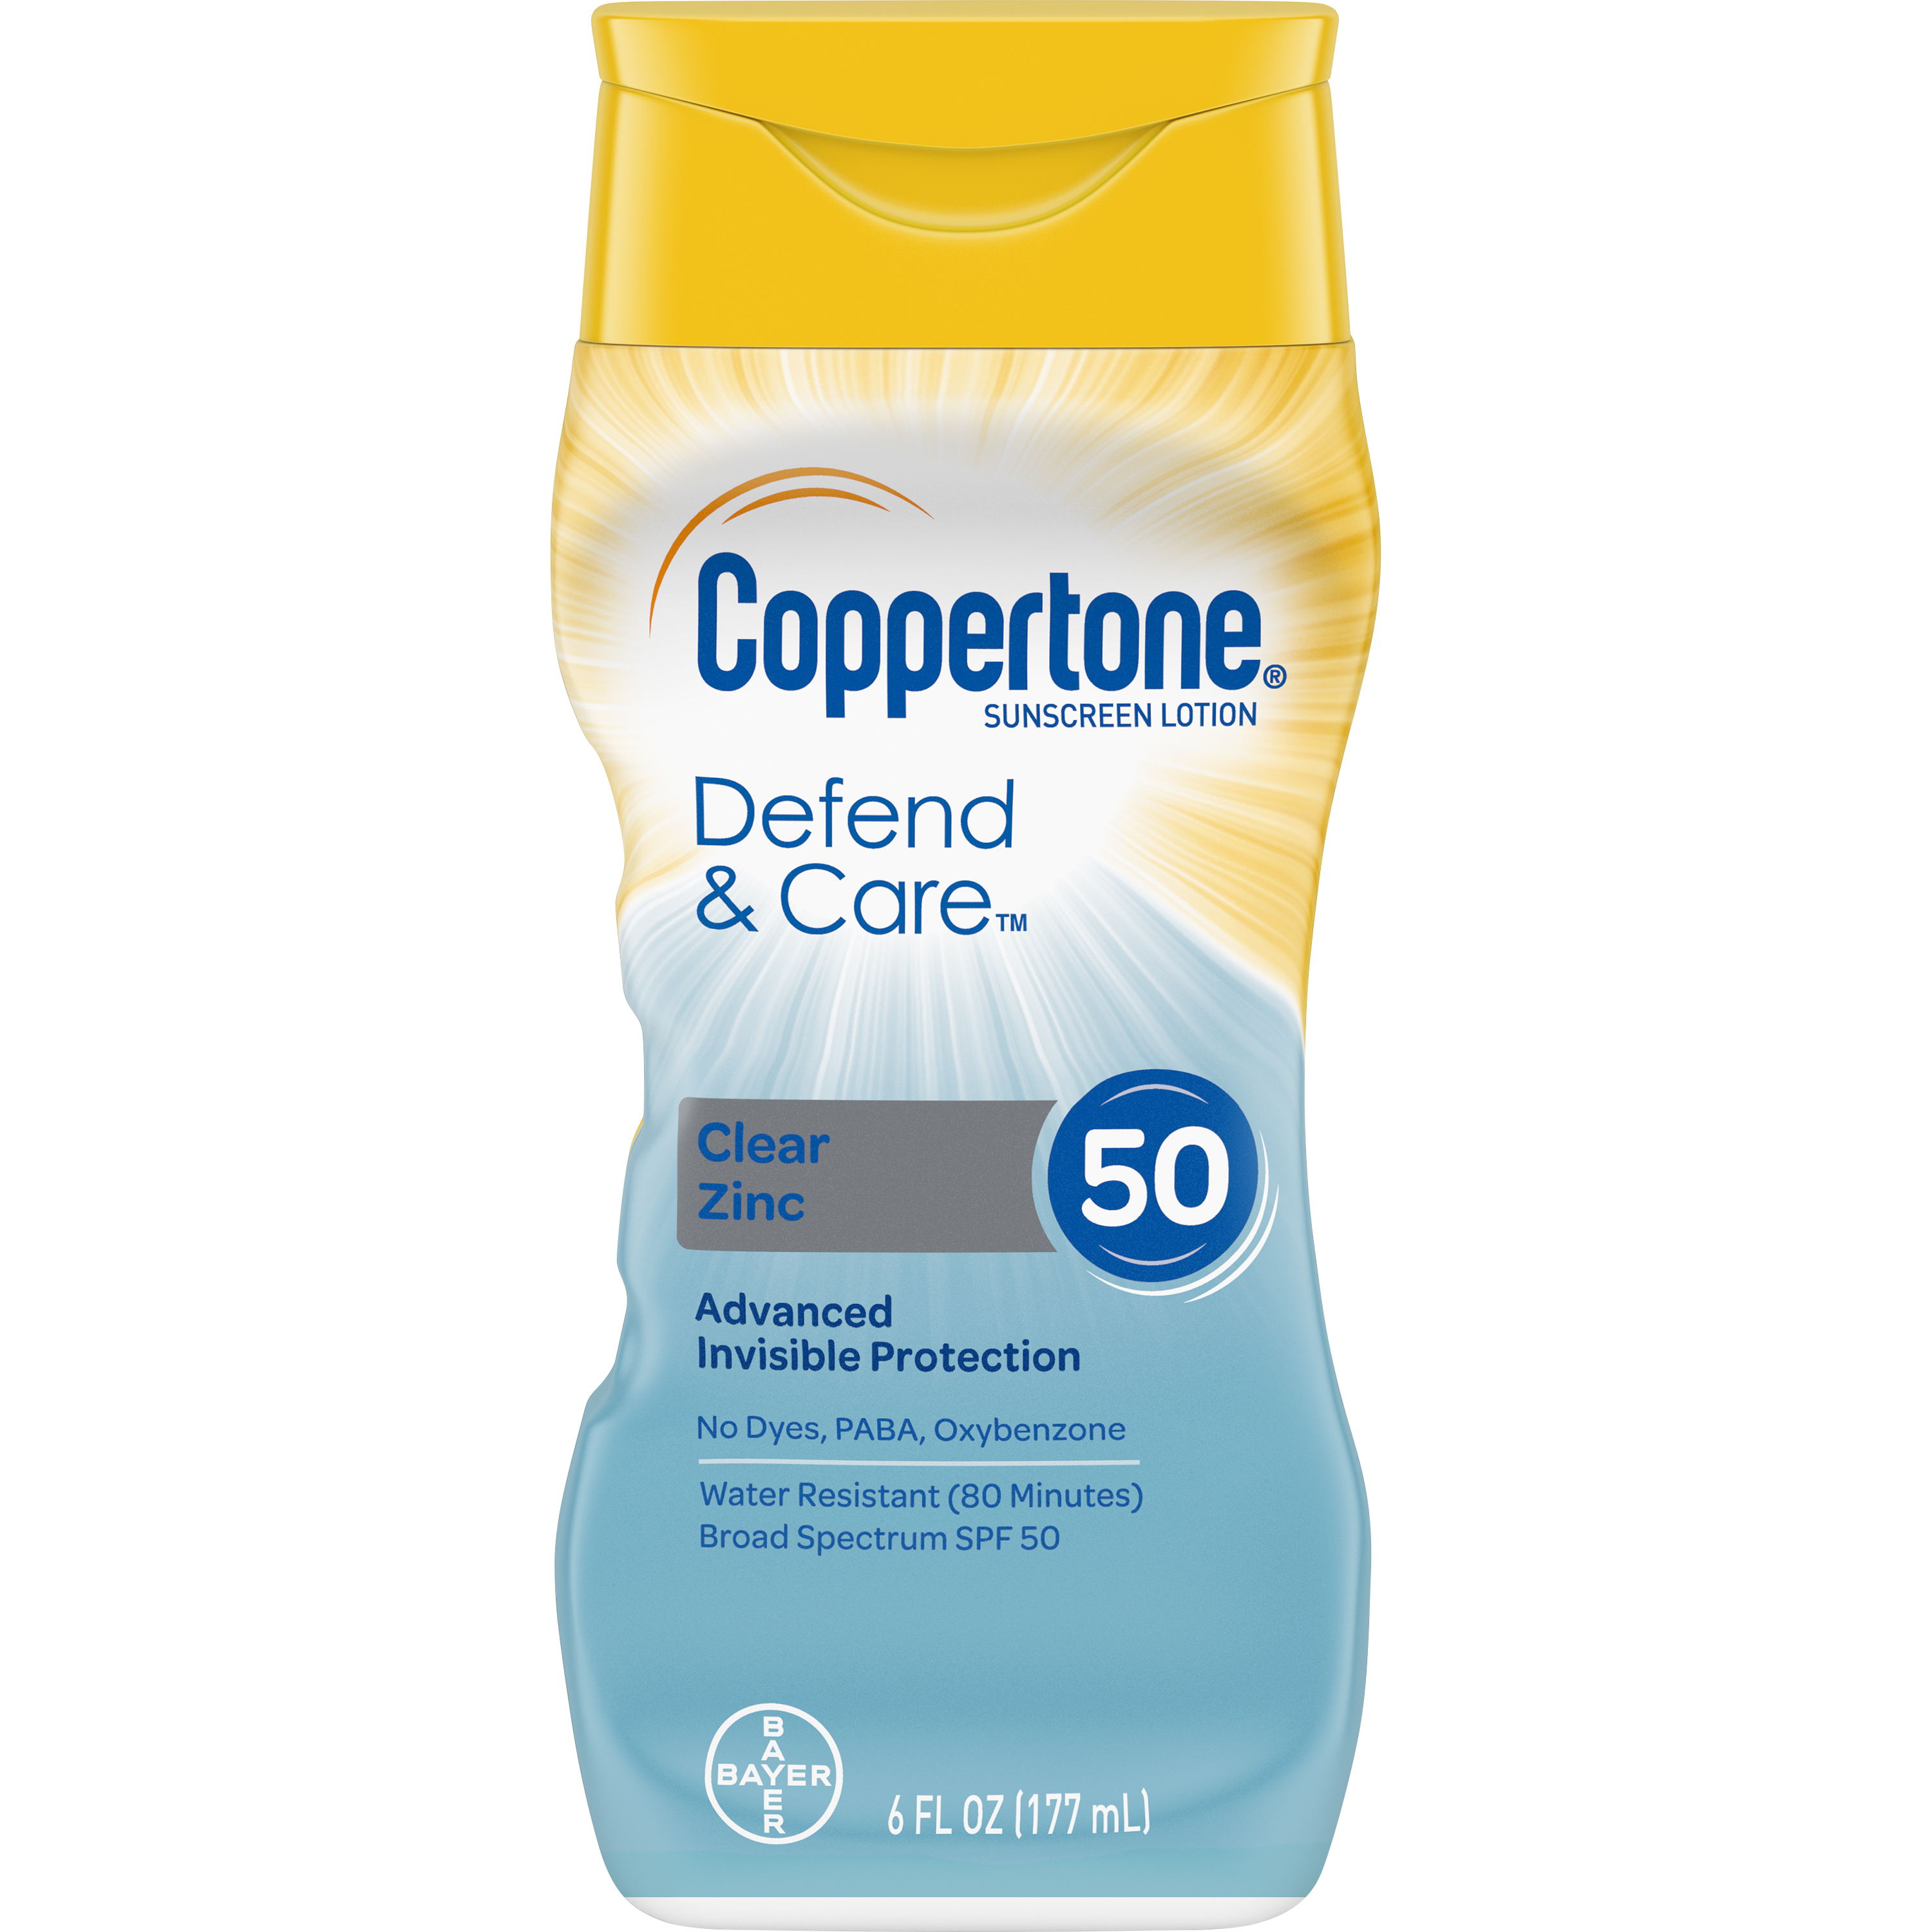 Coppertone Defend & Care Clear Zinc Sunscreen Lotion SPF 50, 6 oz